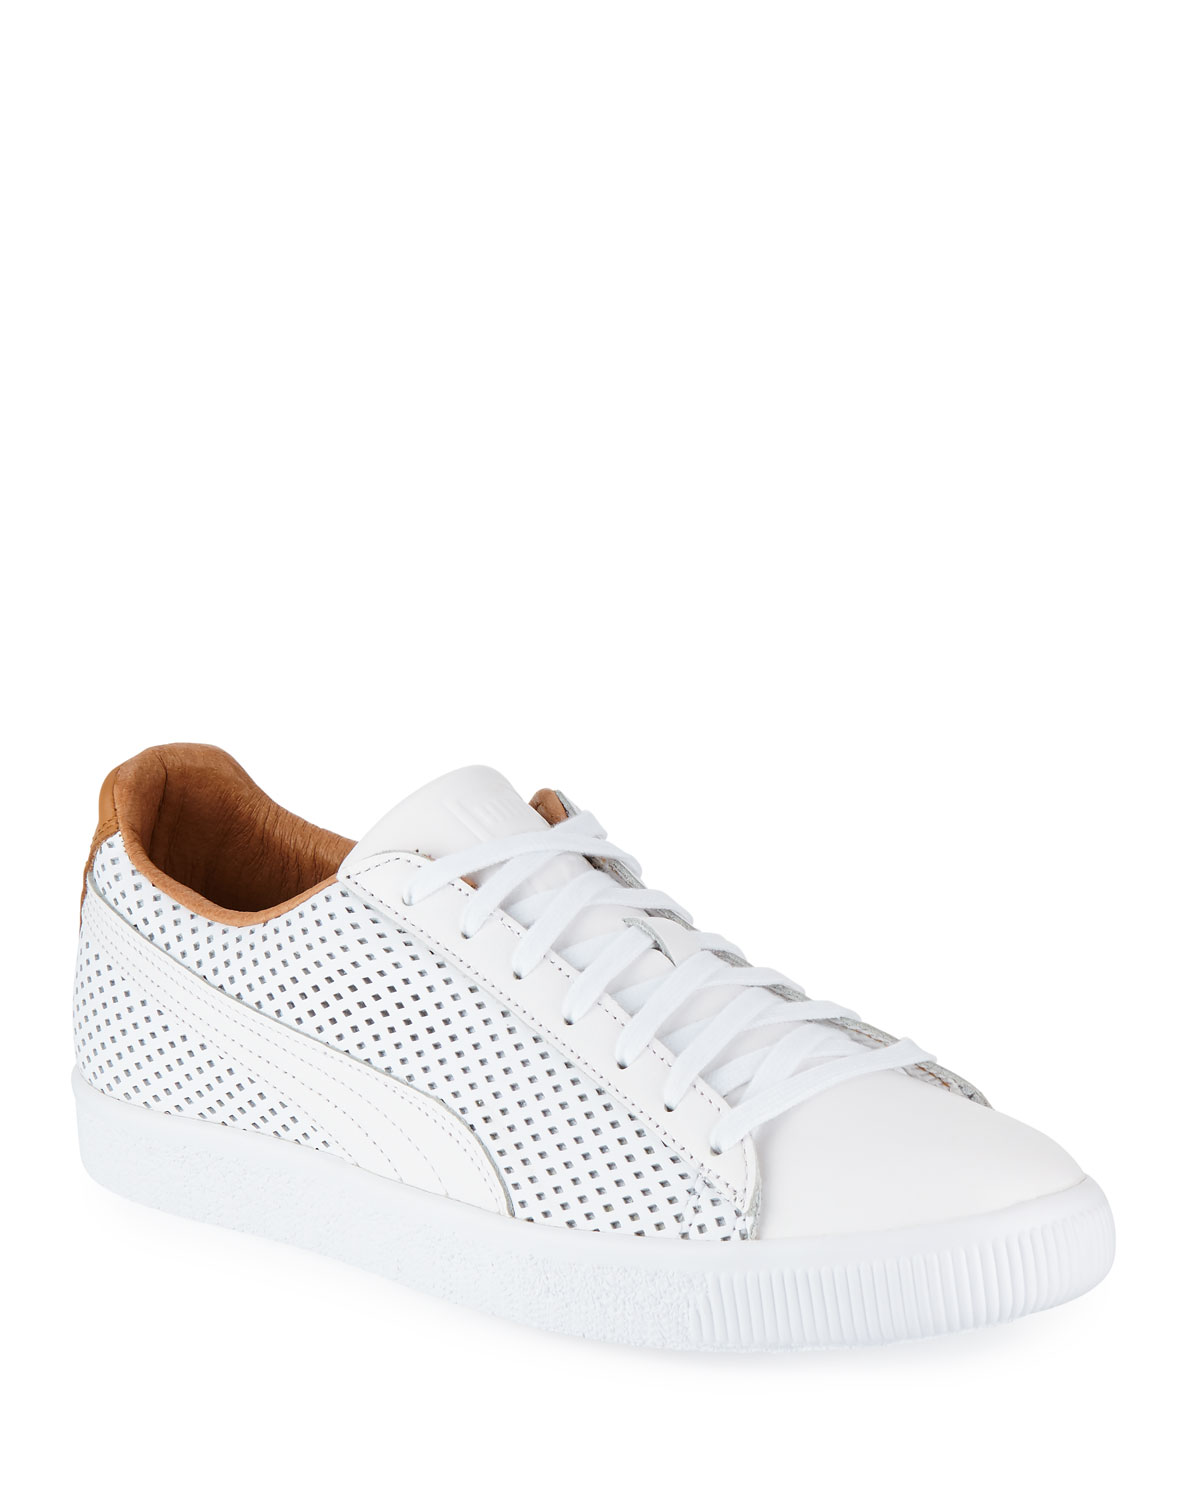 fed66589cf40 Puma Men s Clyde Perforated Leather Creeper Sneakers